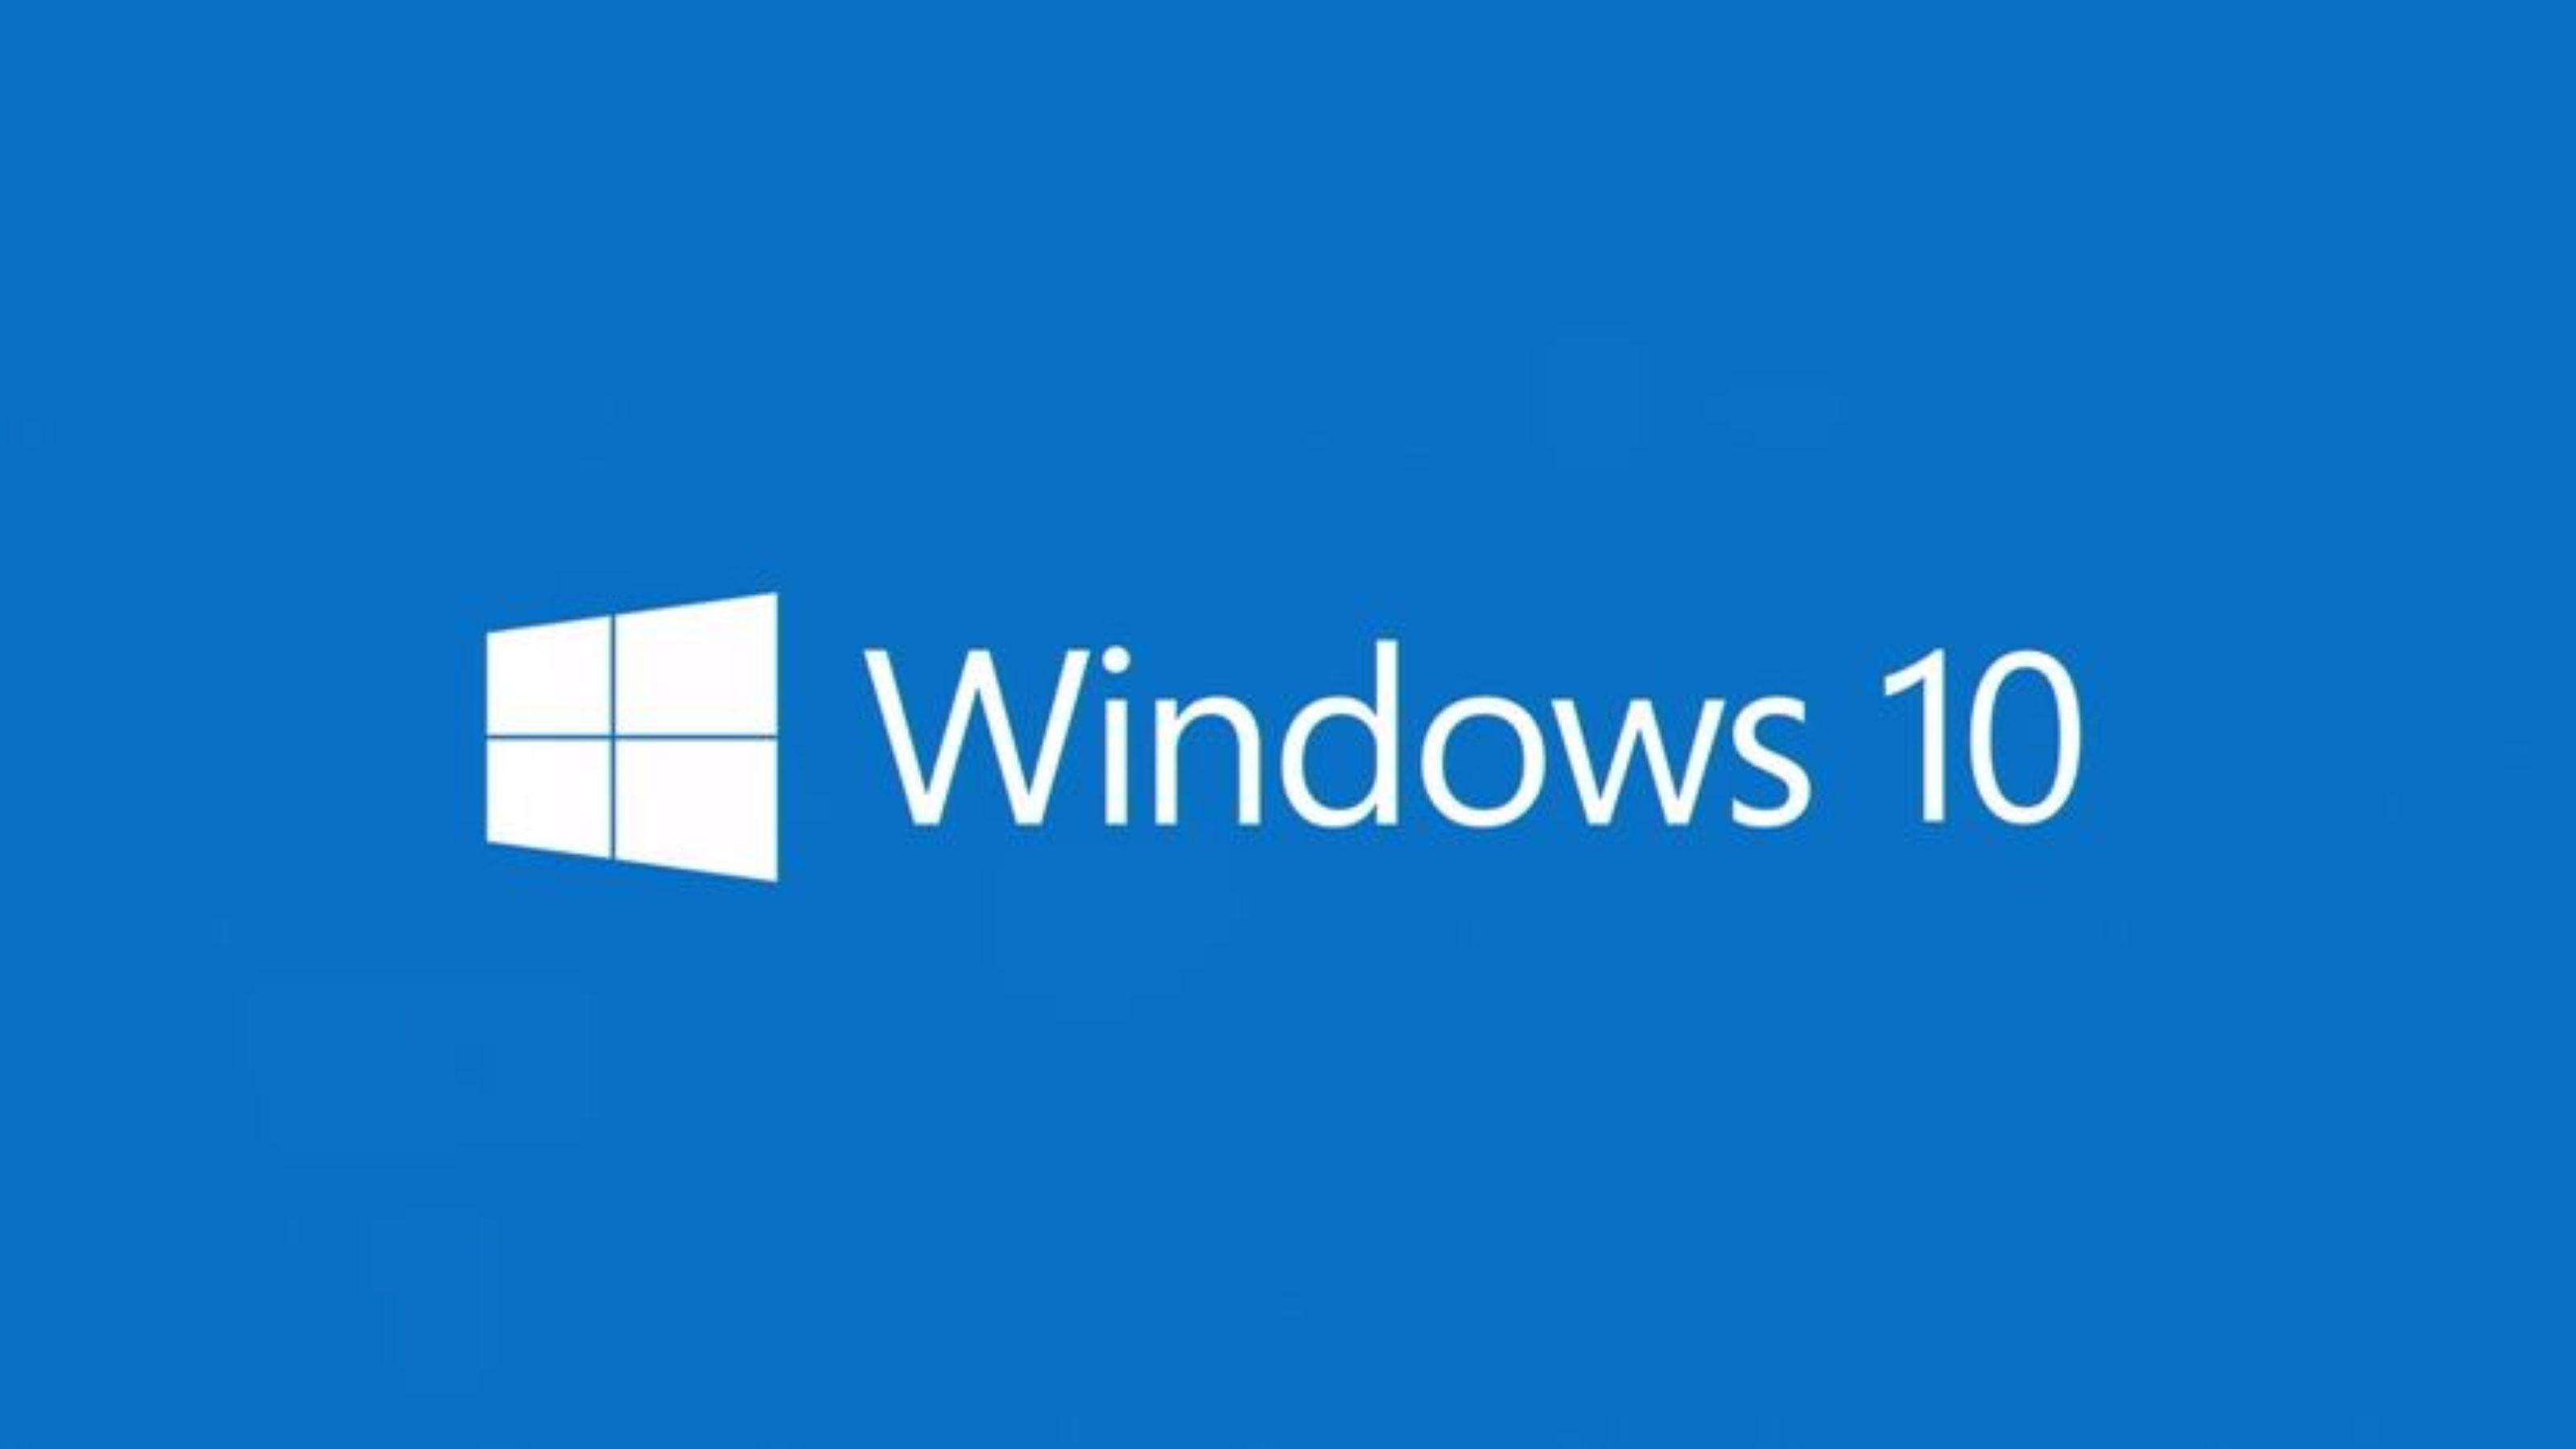 how to force windows 10 update on windows 7